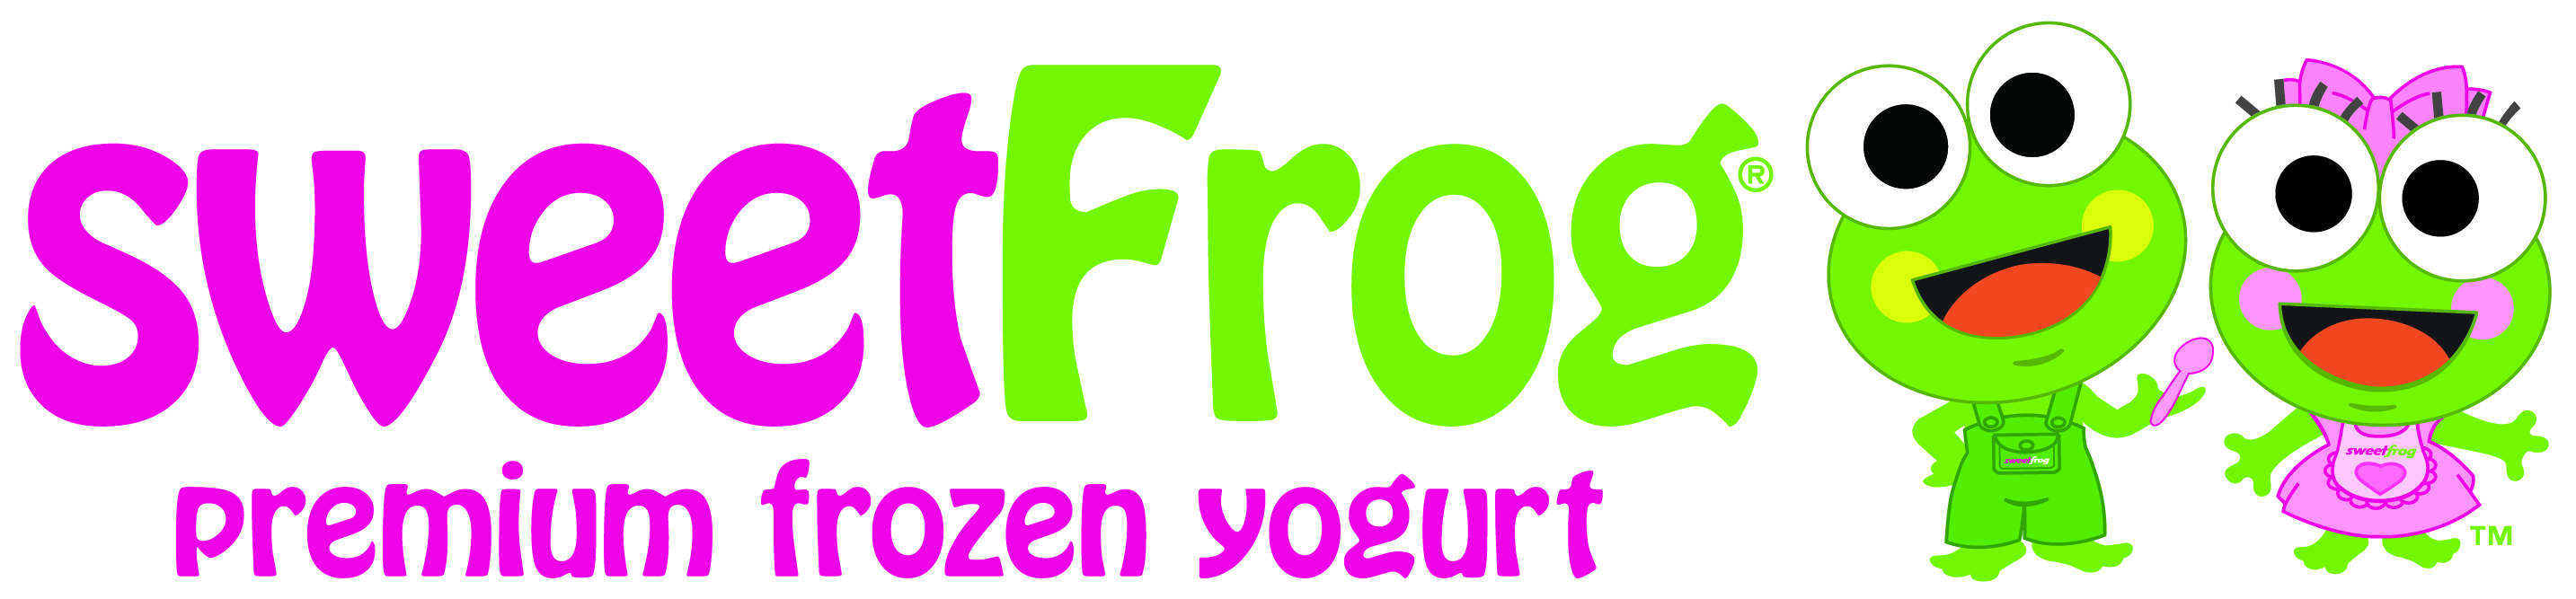 sweet-frog-frozen-yogurt.jpg